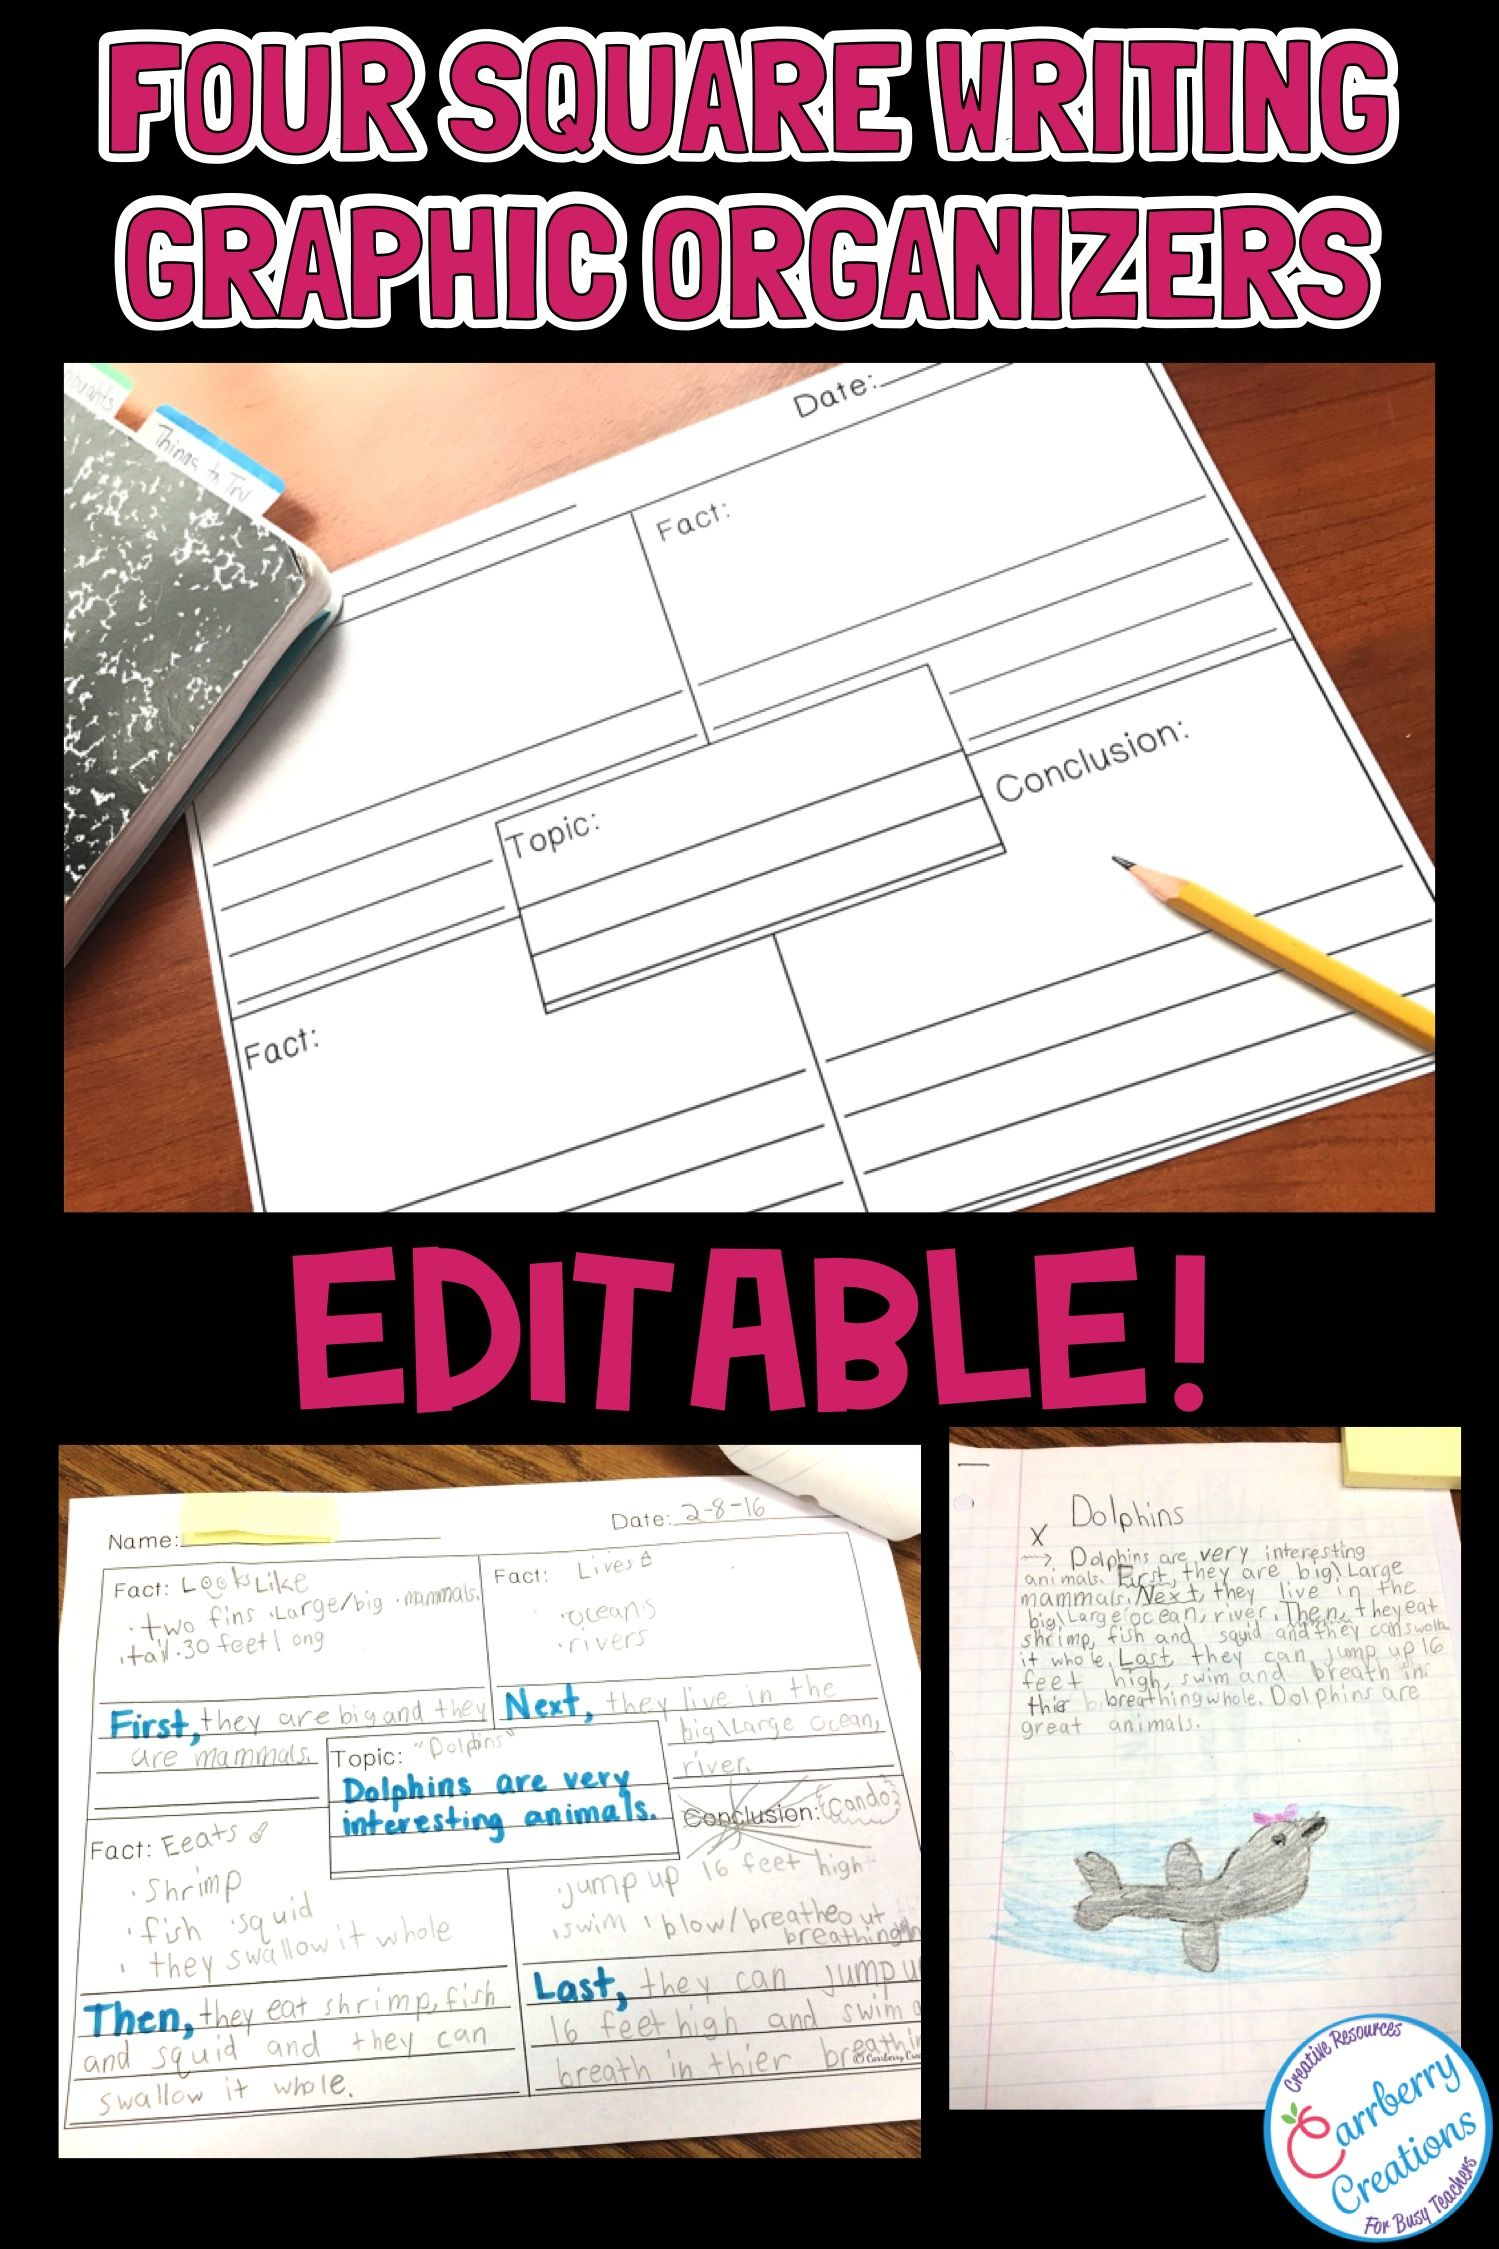 Four Square Writing Graphic Organizers Template Pack